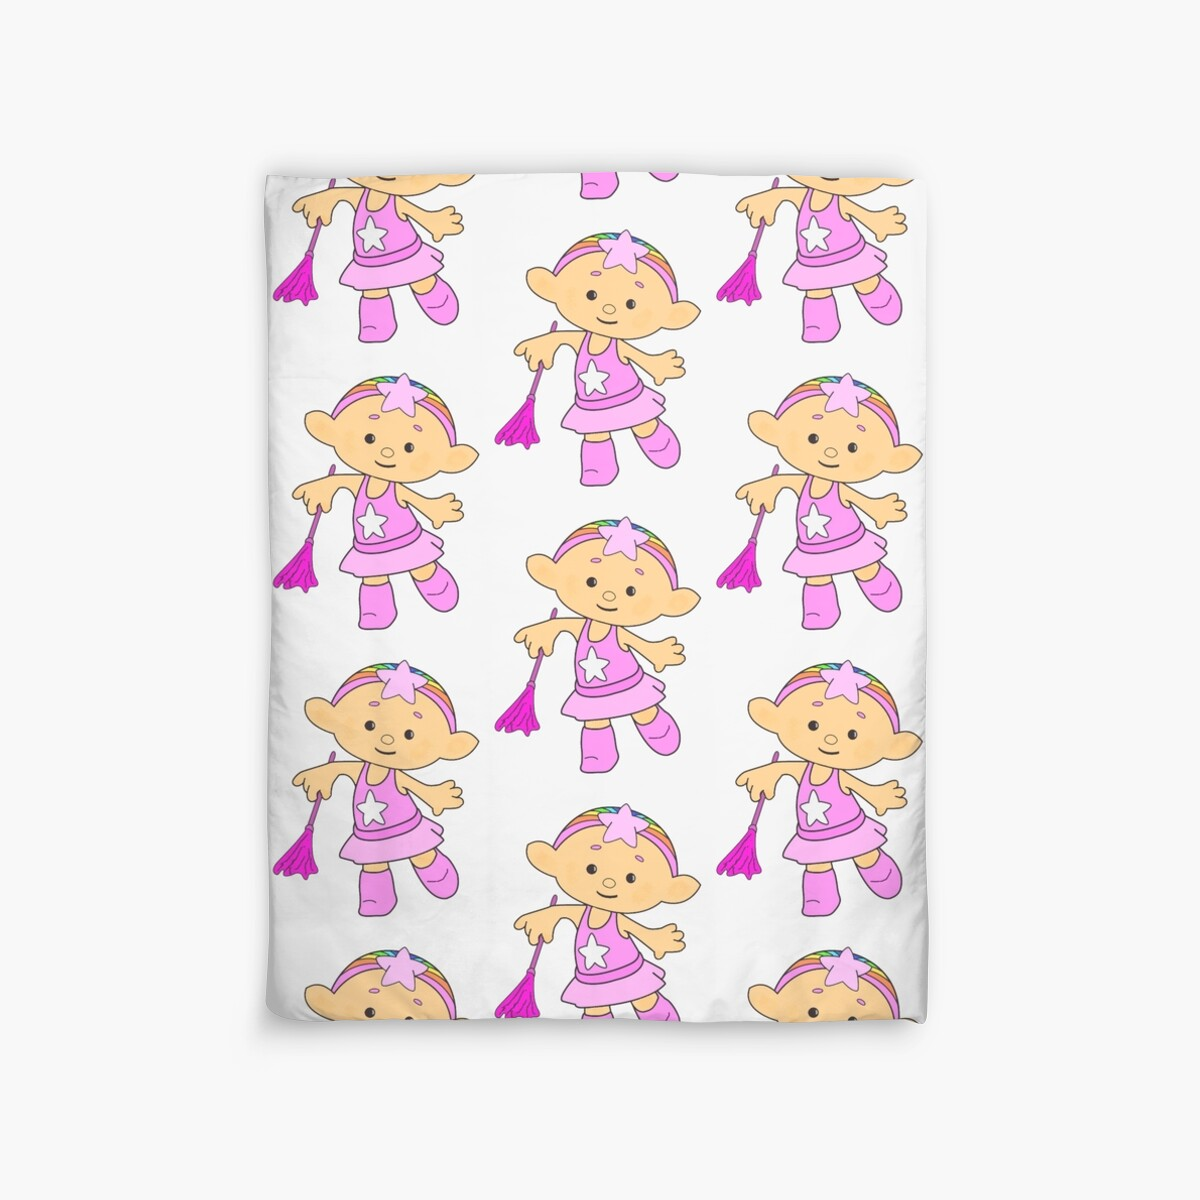 Baba pink cloudbaby duvet covers by jon lees redbubble for Home decor newtownards